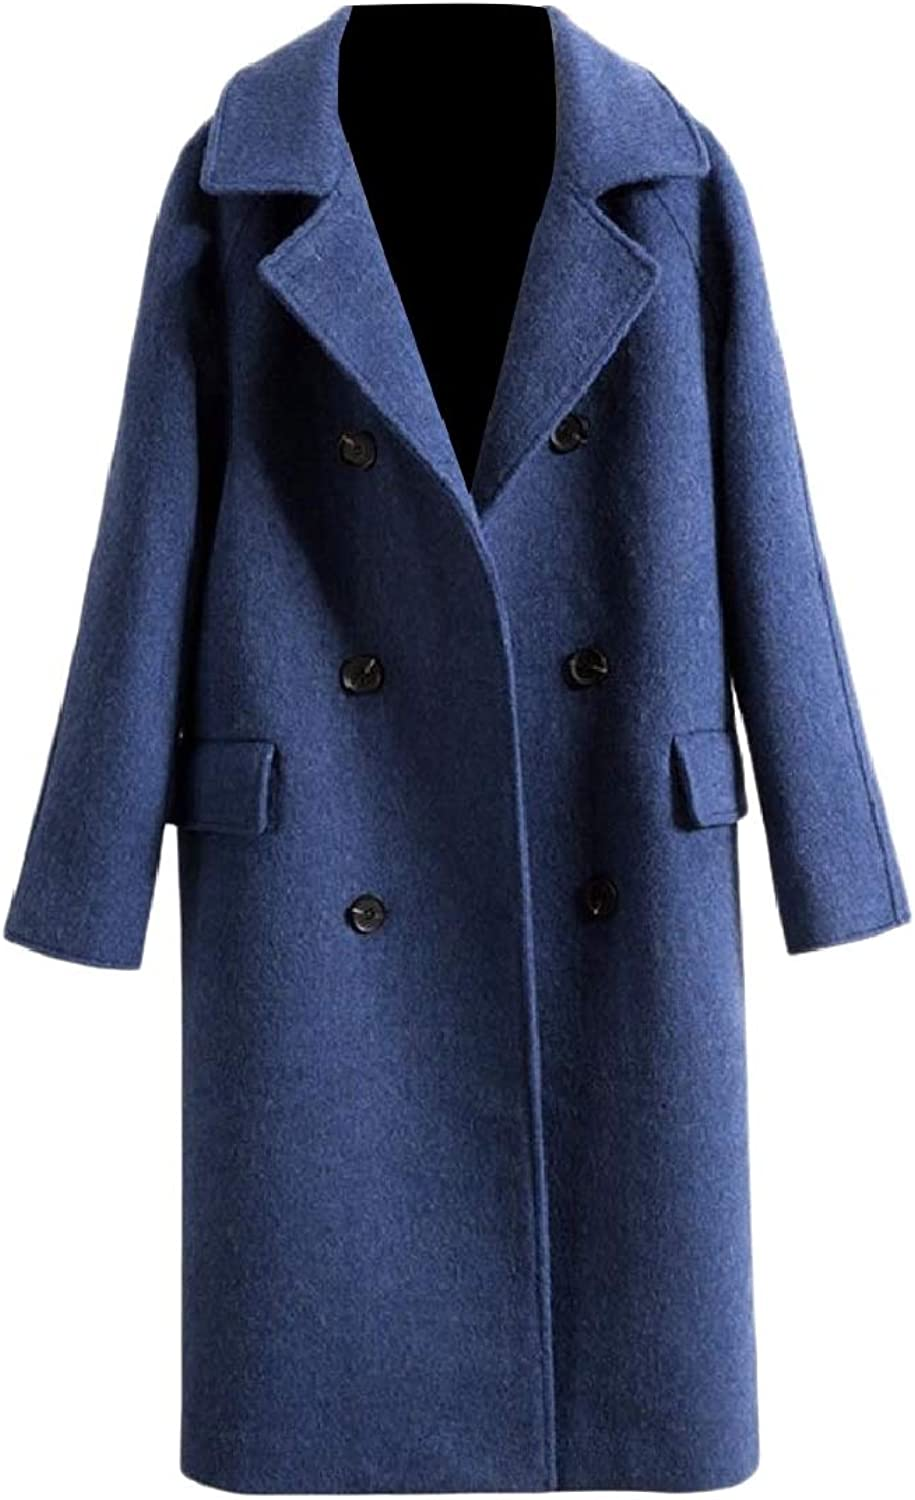 Coolhere Women Baggy Style Double Breasted Turn Down Collar Pea Coat Jacket